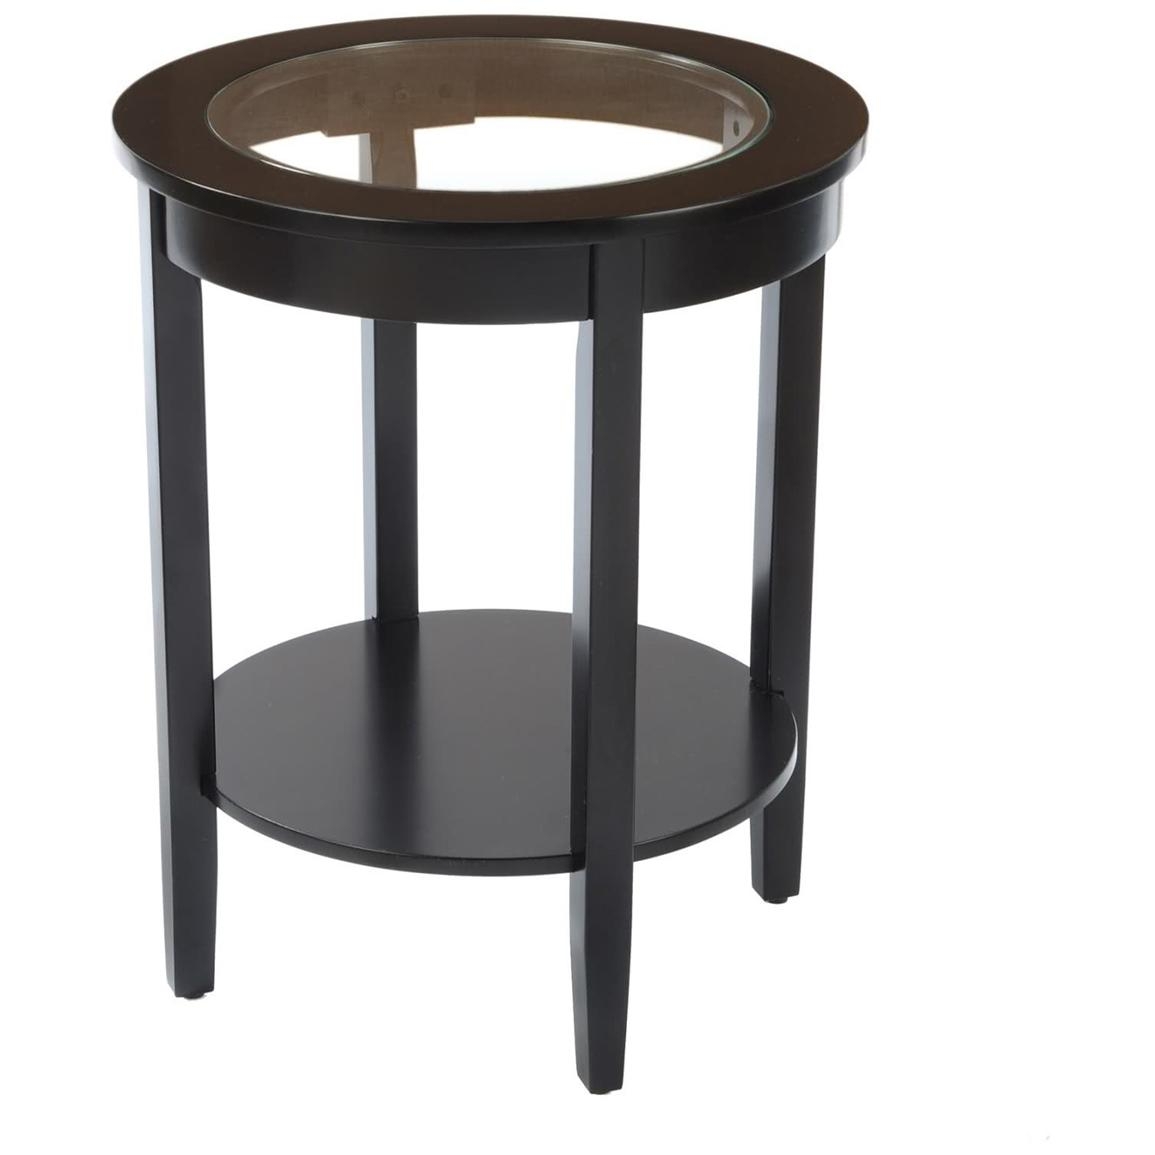 outstanding target side table round kmart metal silver upcycled tabl and cleo black wood marblegold white plans legs woodworking pedestal emperor rustic marble top gold glass